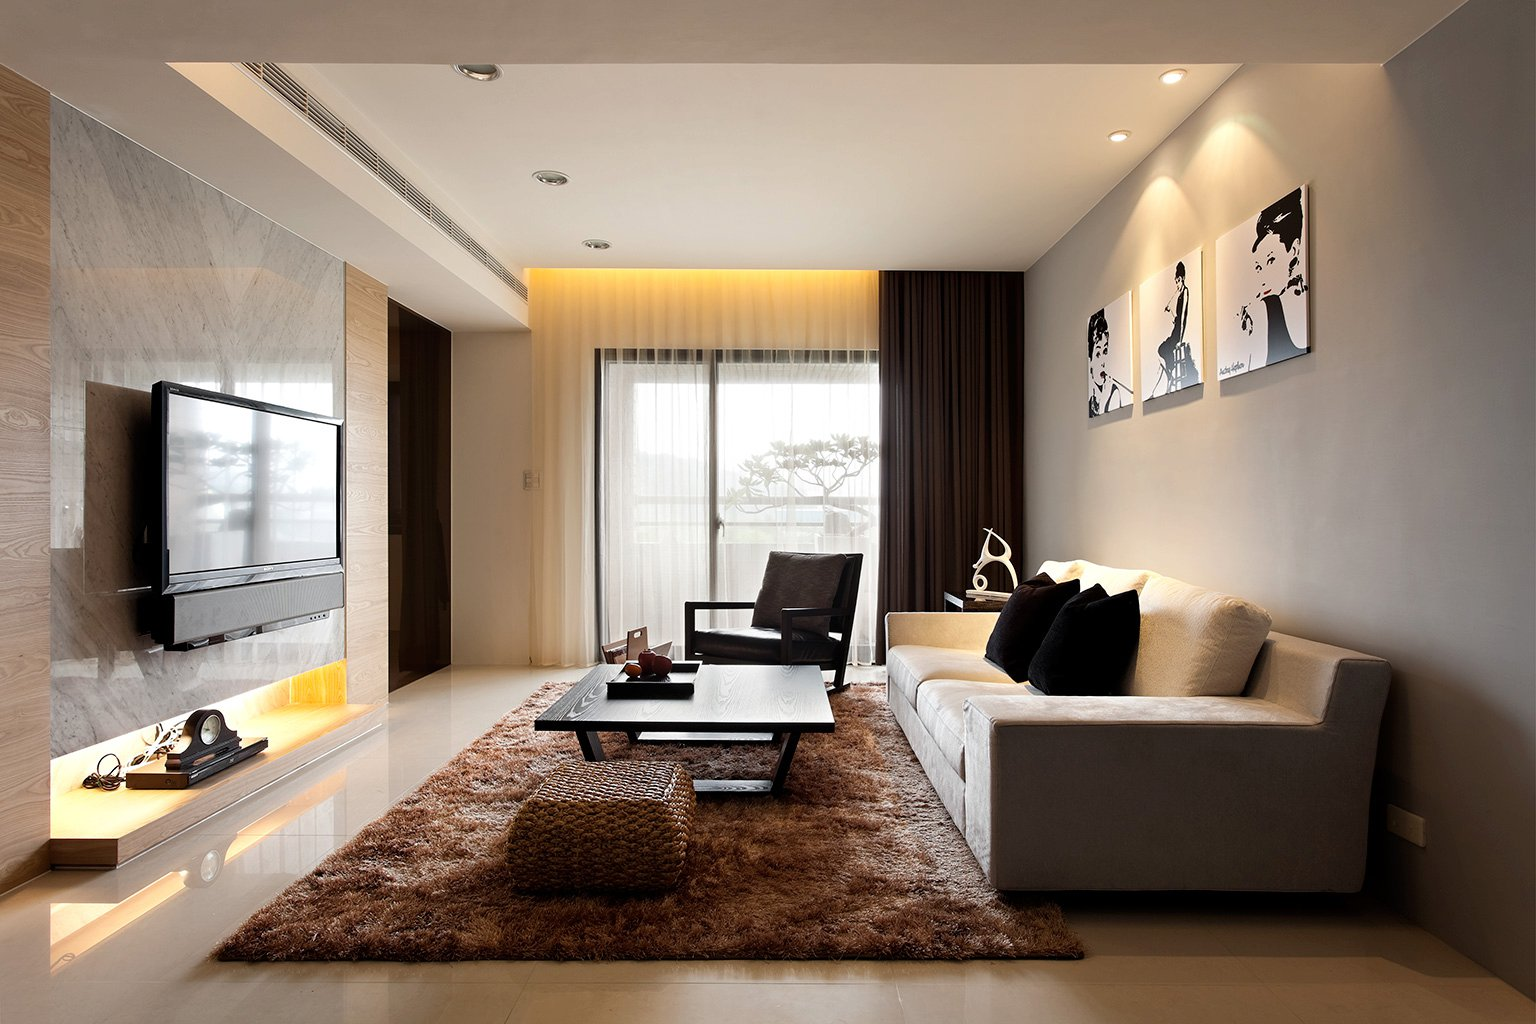 Impressive Modern Living Room Decor 1536 x 1024 · 238 kB · jpeg